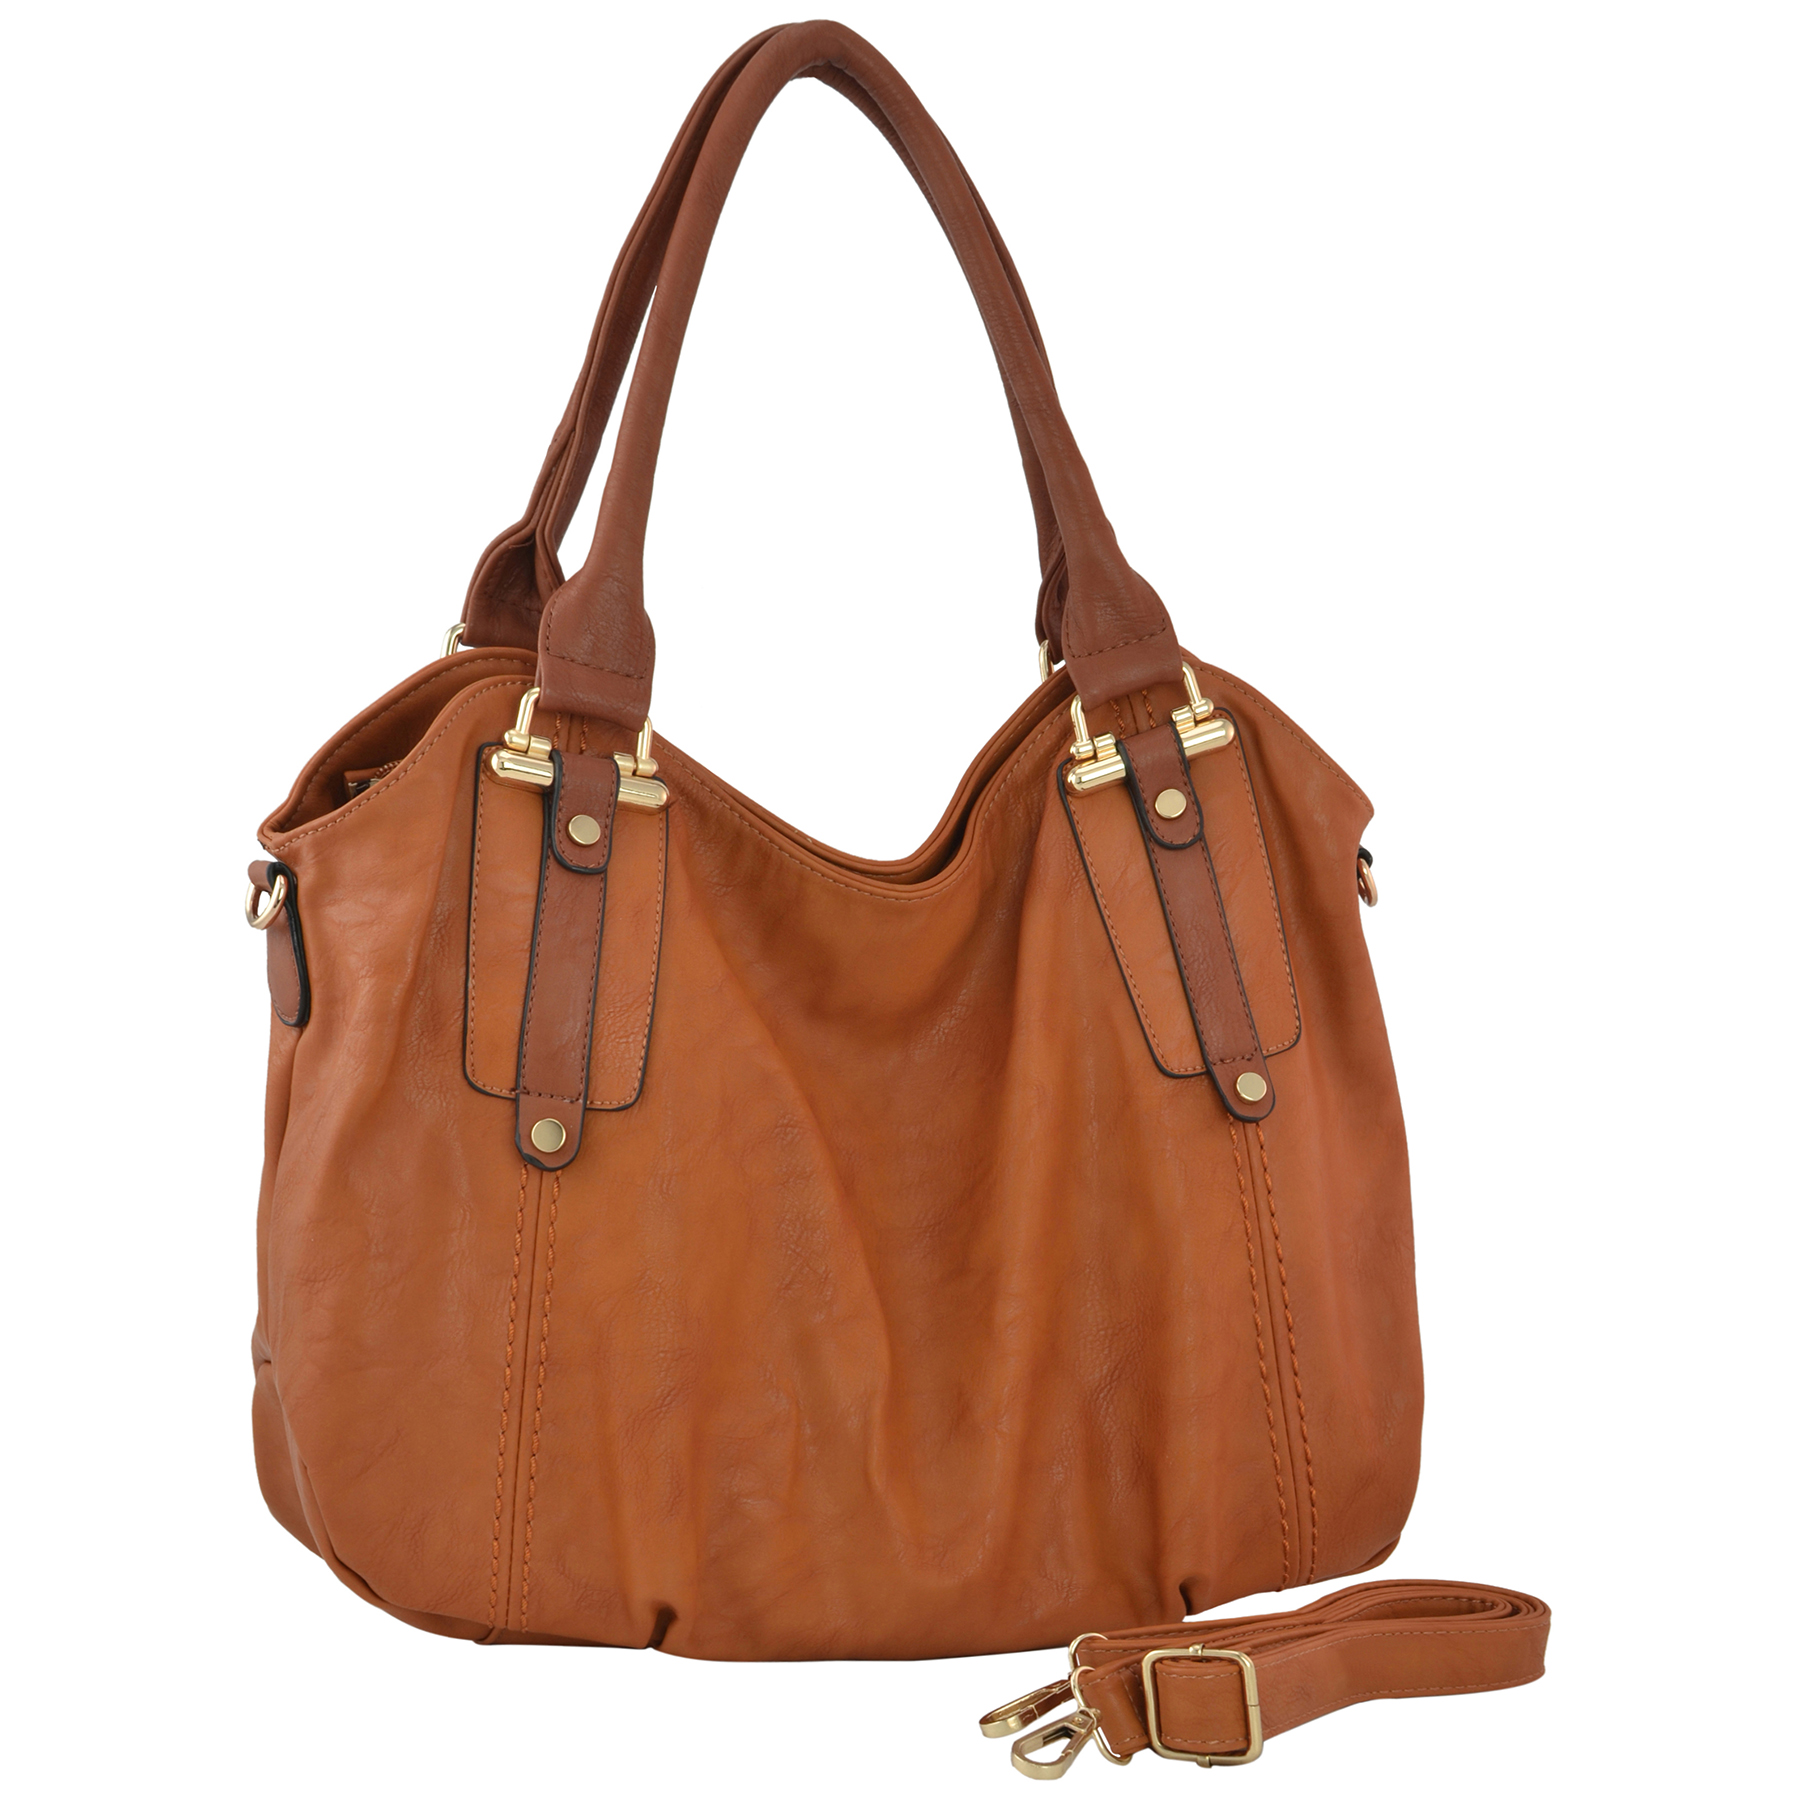 mg-collection-mimi-office-tote-style-handbag-jsh-yd-1225br-1.jpg